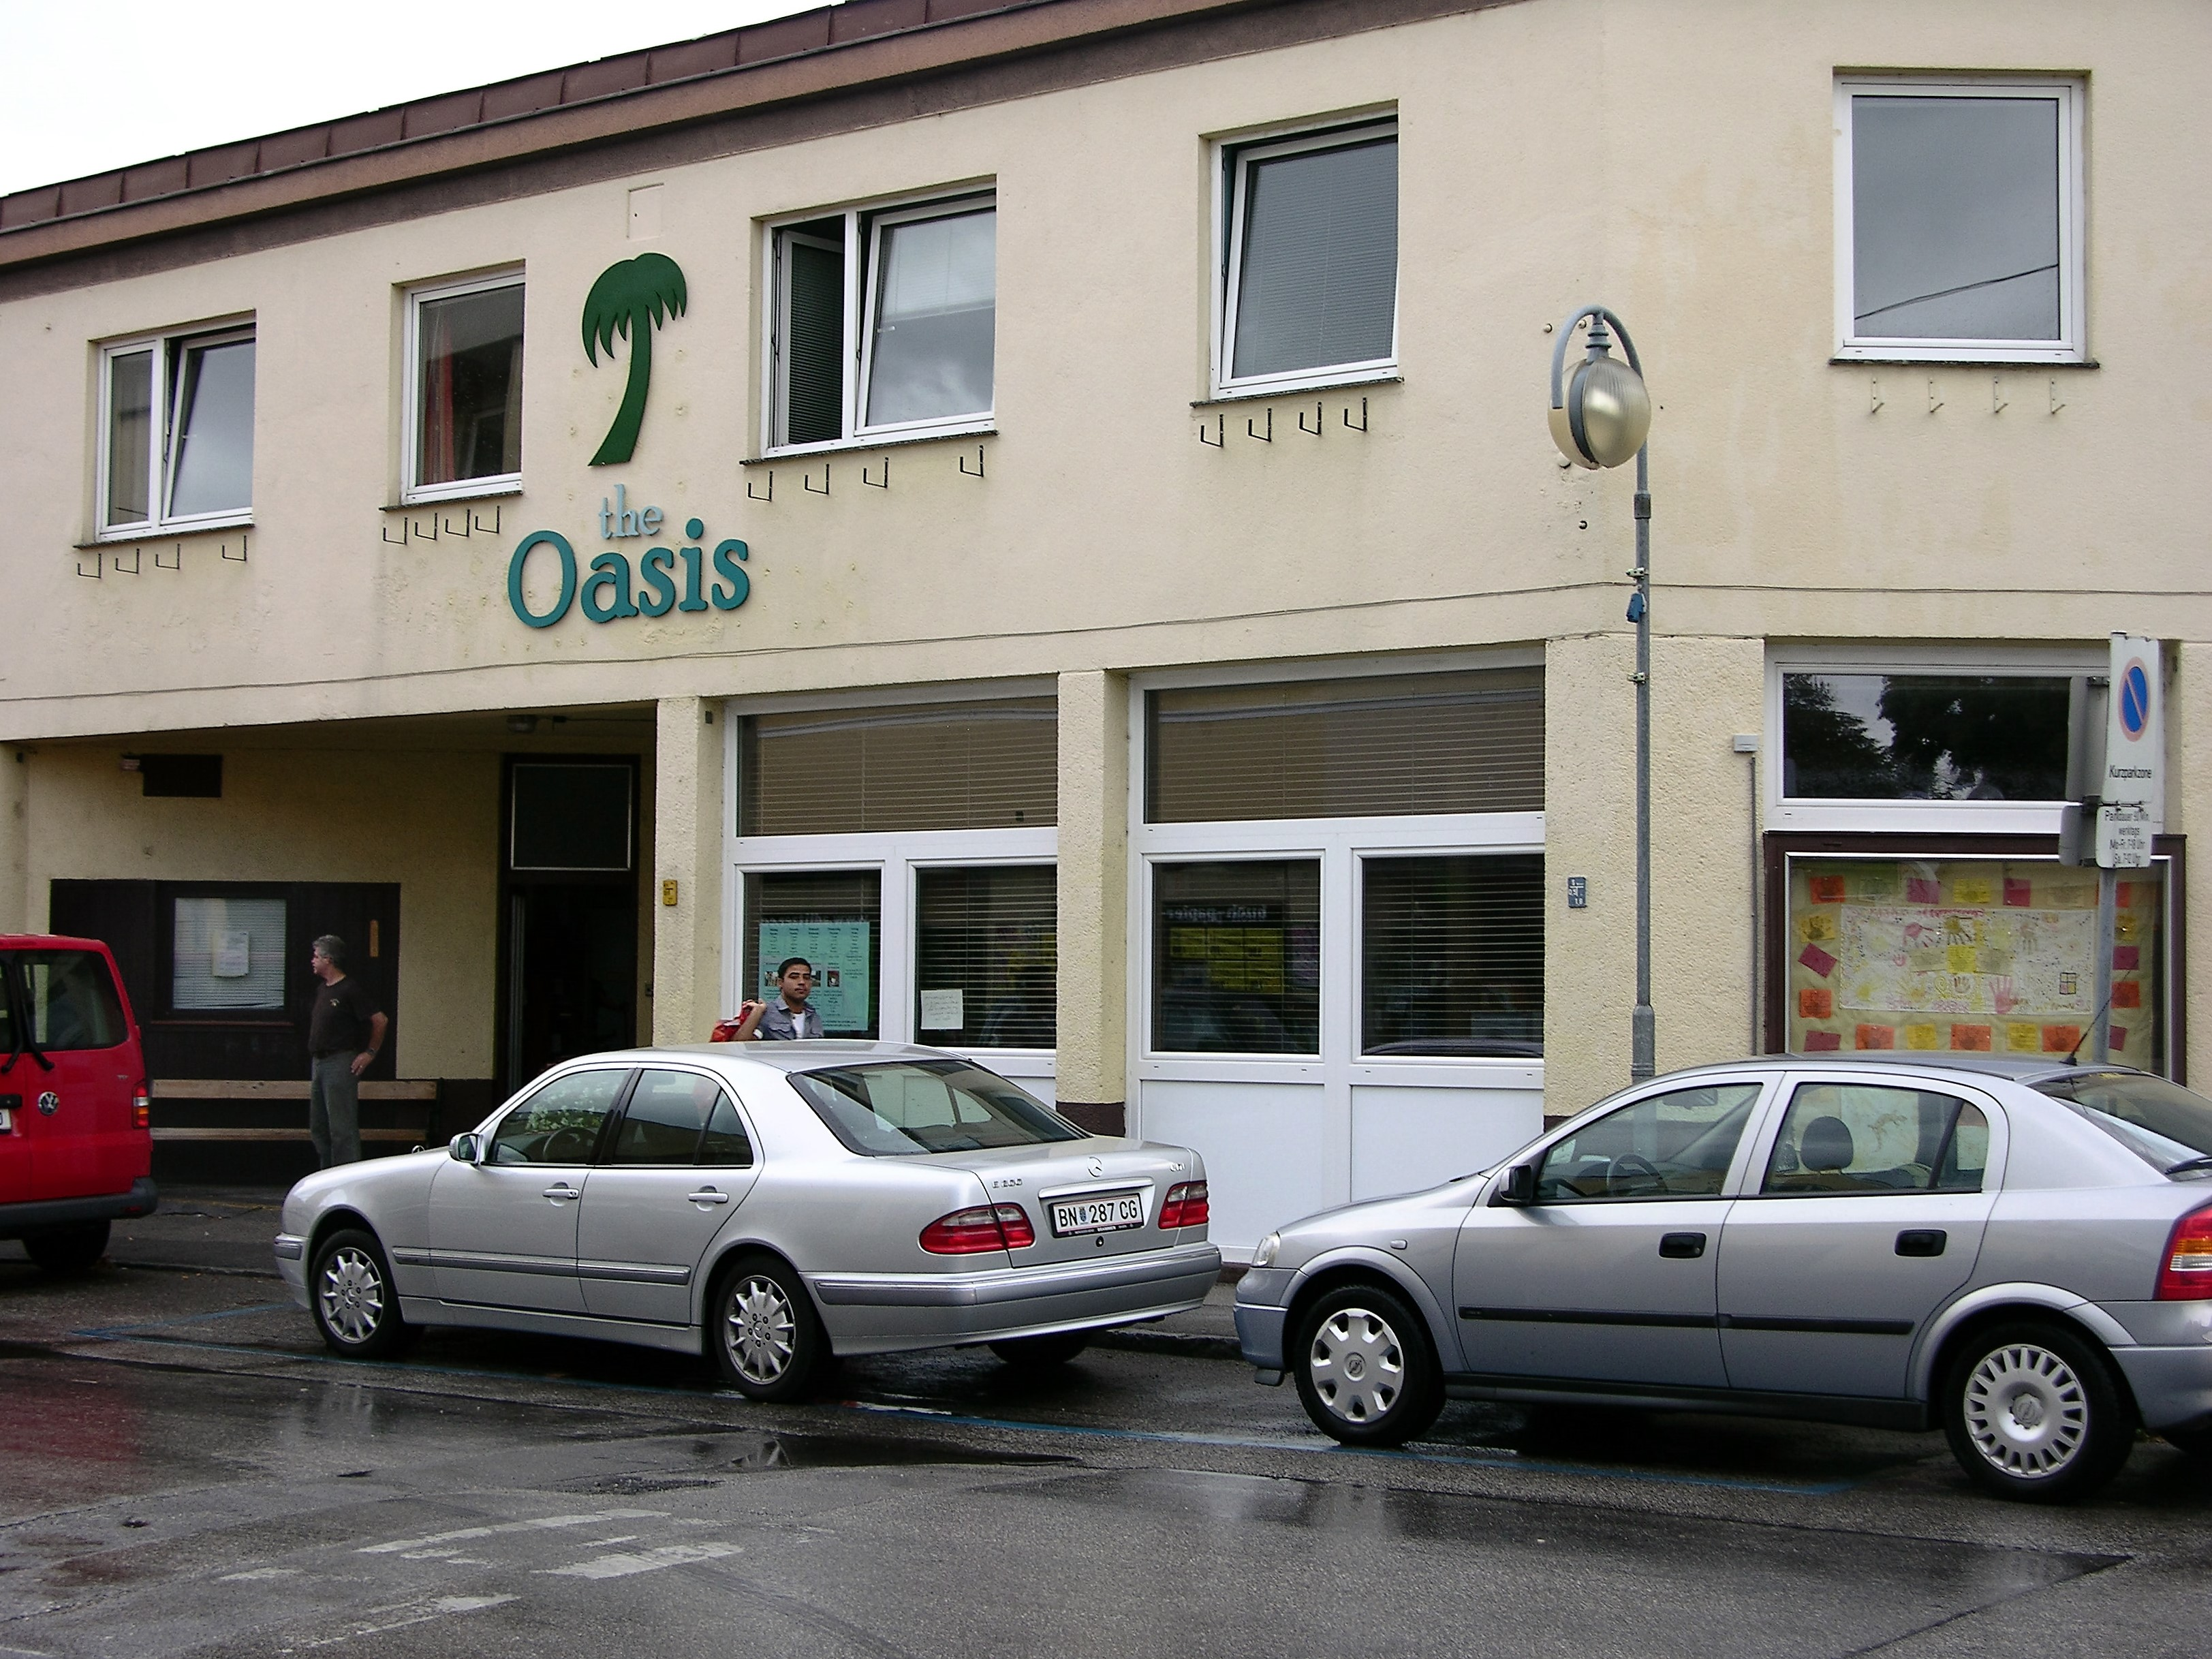 Oasis refugee center from outside